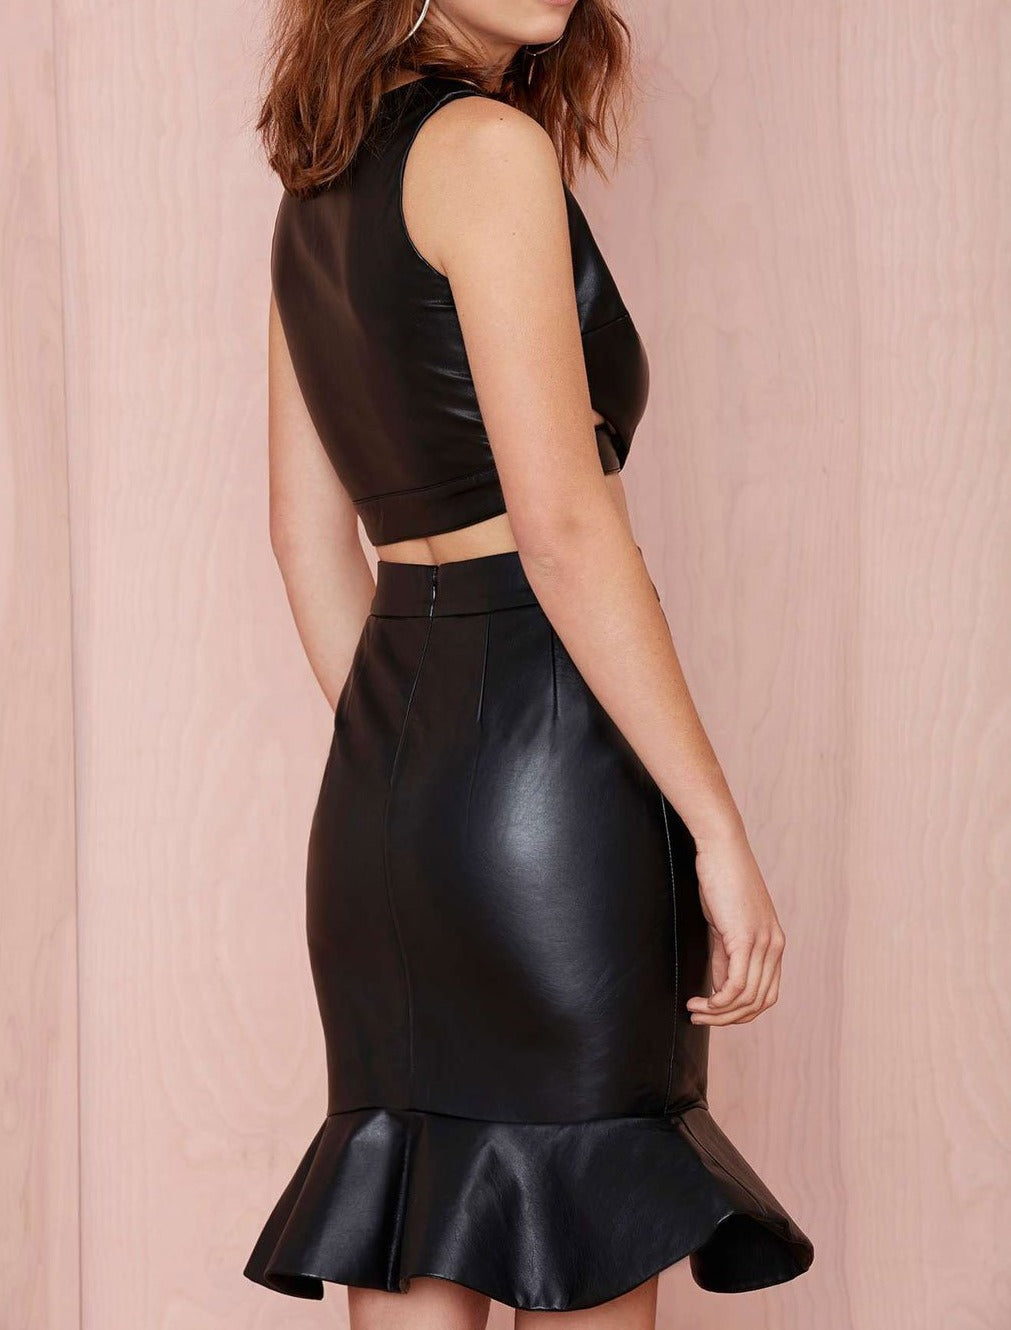 Black Shiny Leatherette Fashion Skirt Set